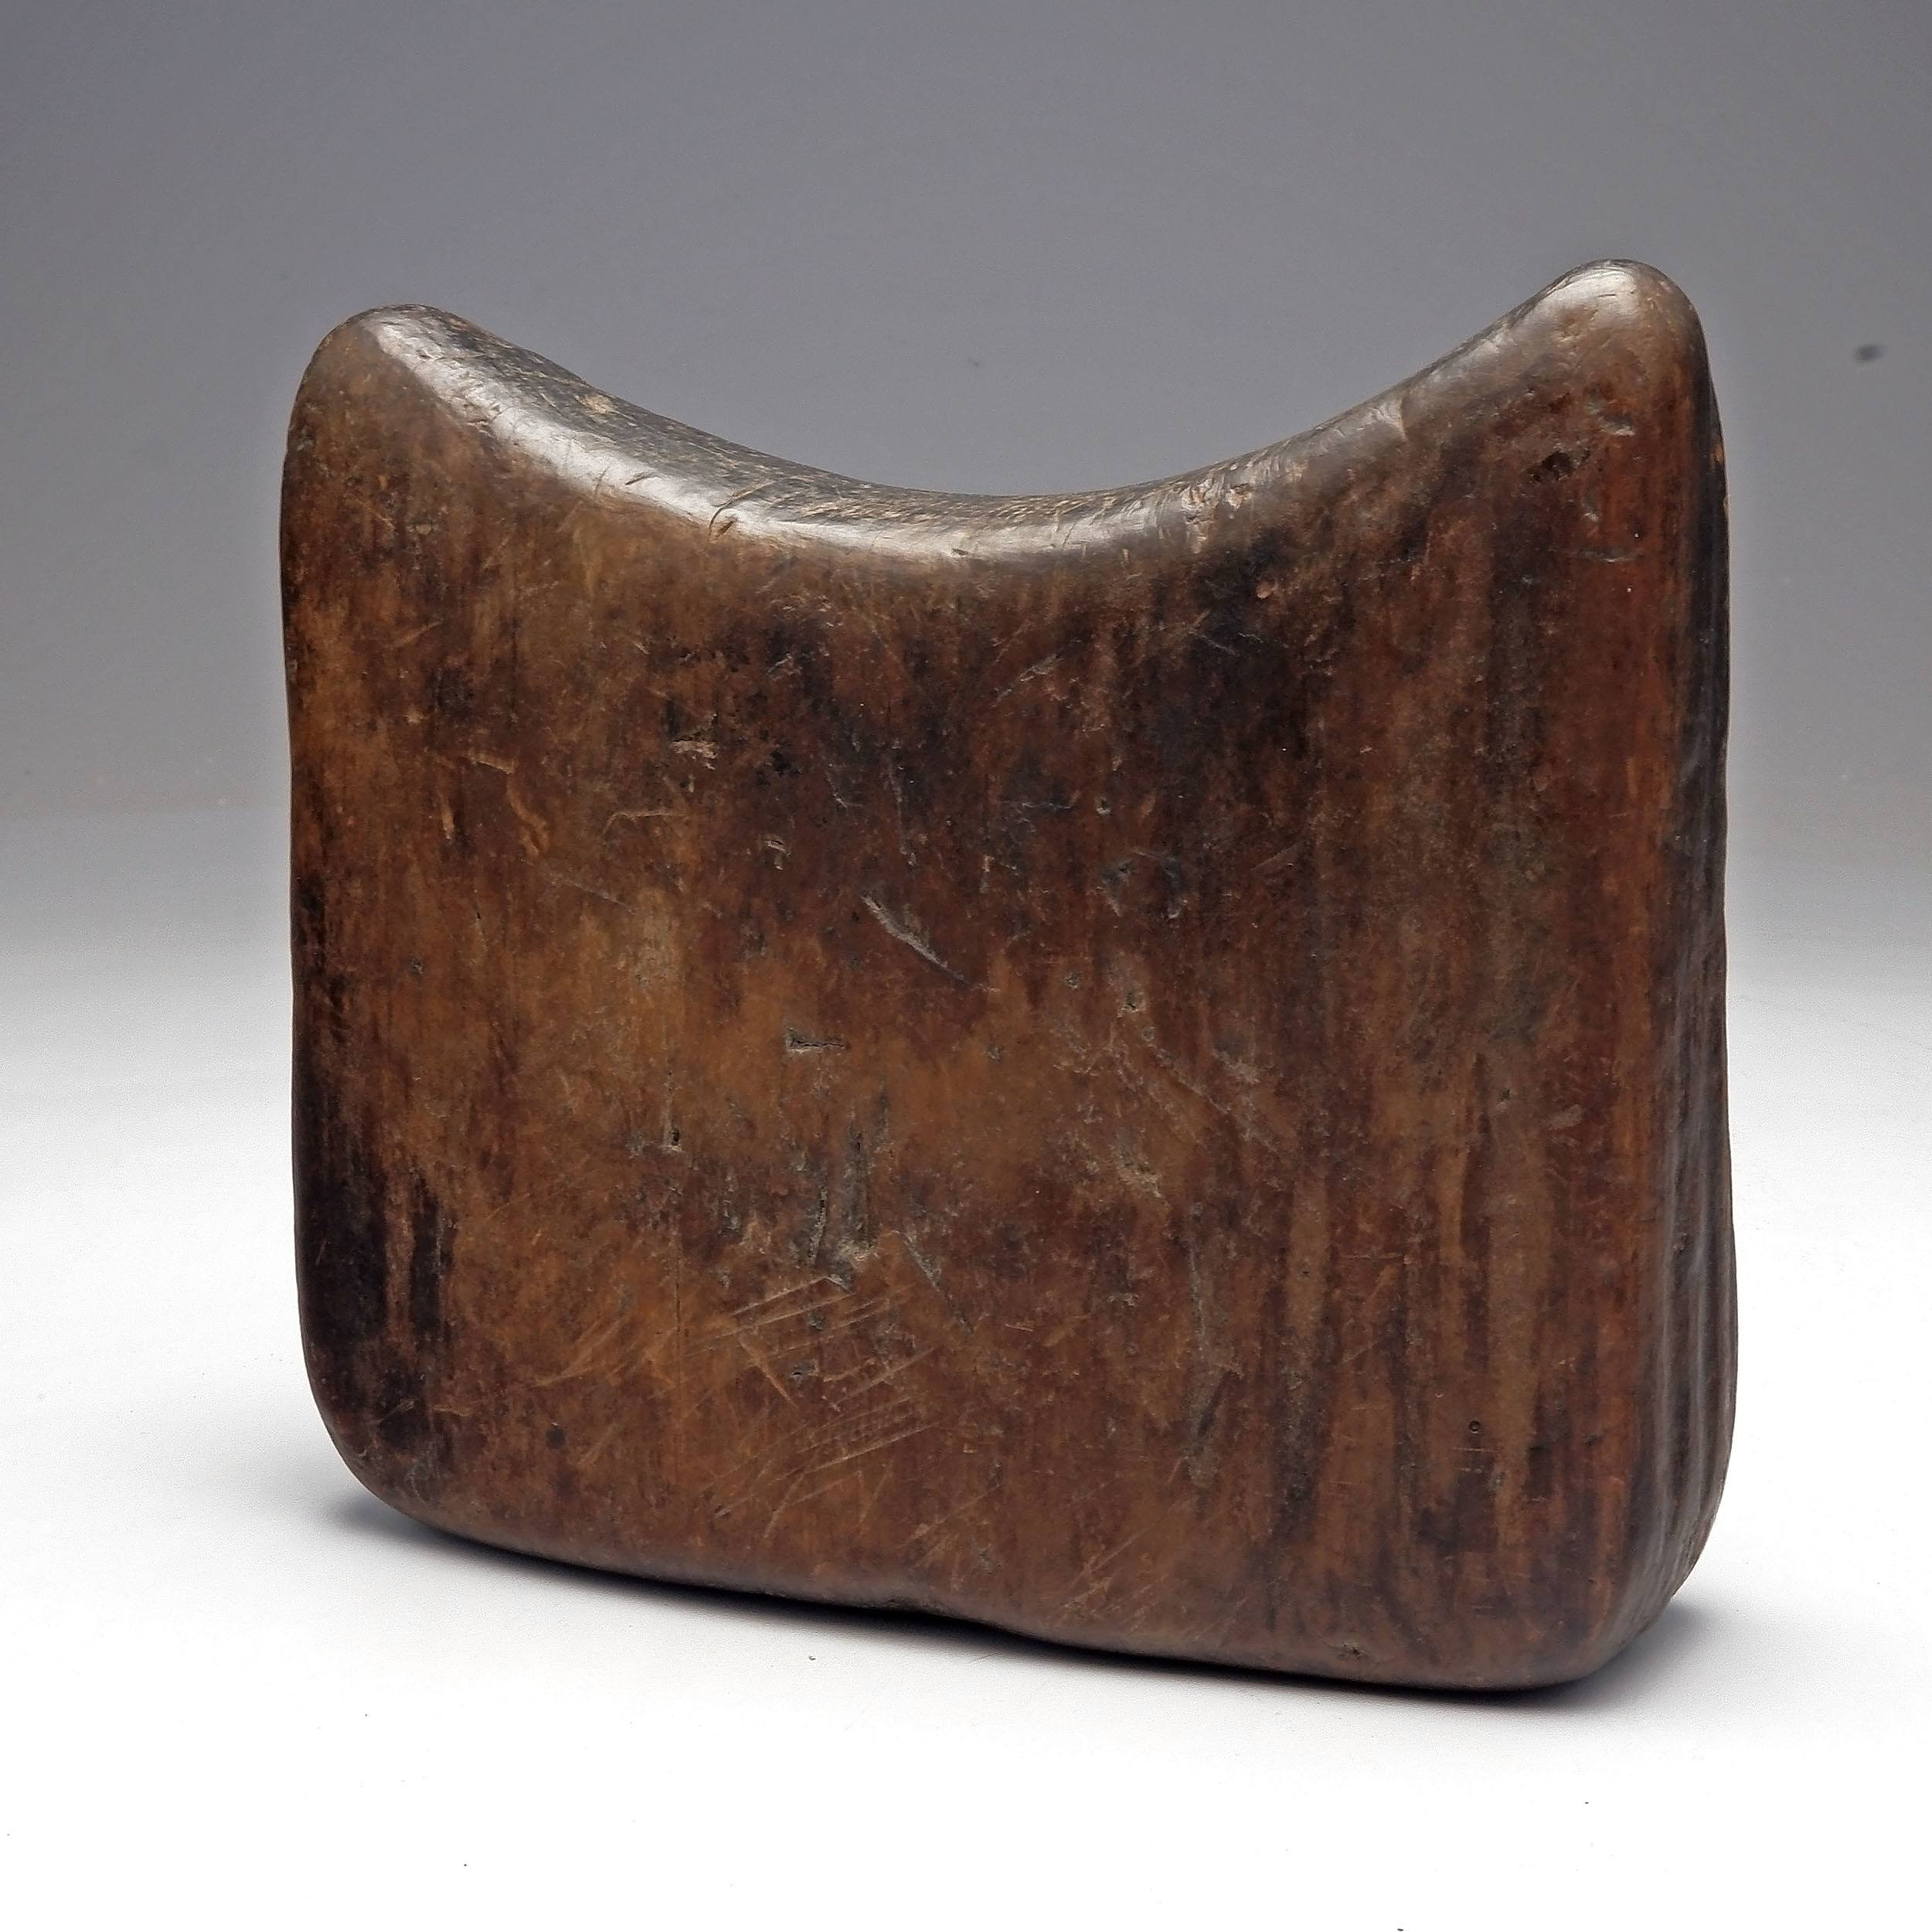 'Headrest, Sidamo Tribe, Rift Valley Region Ethiopia'